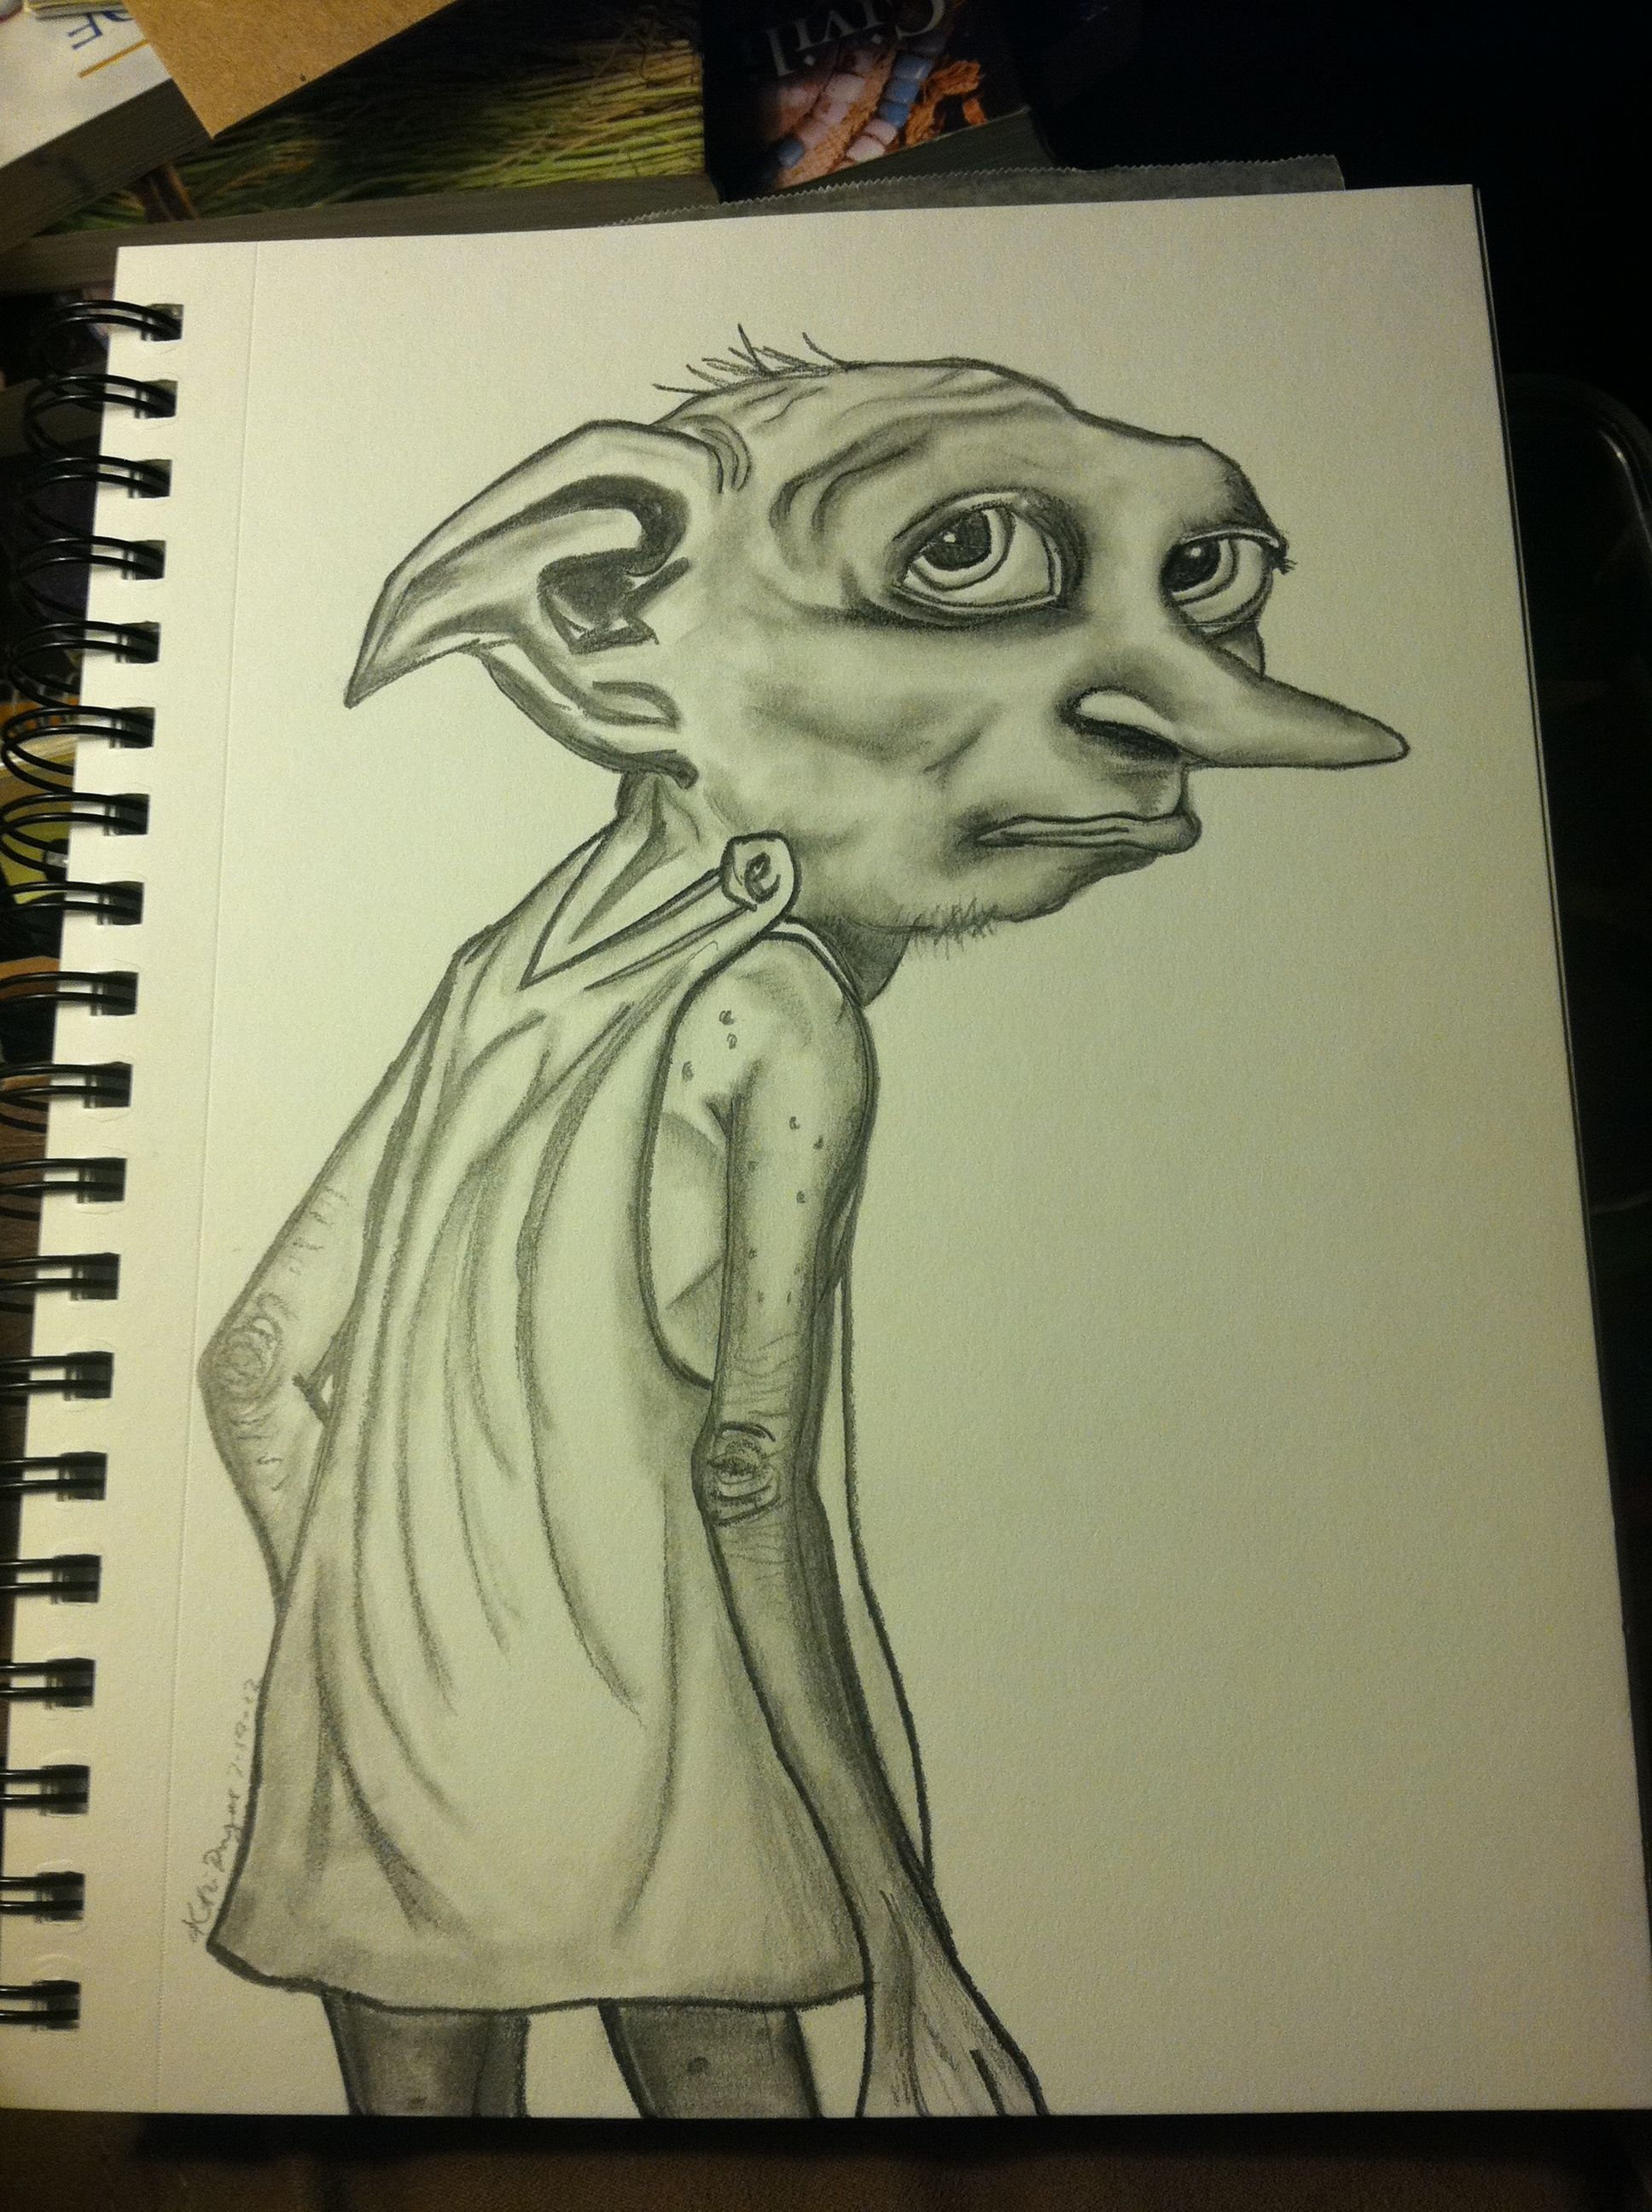 Someones Incredible Pencil Drawing Of The Dobby Character